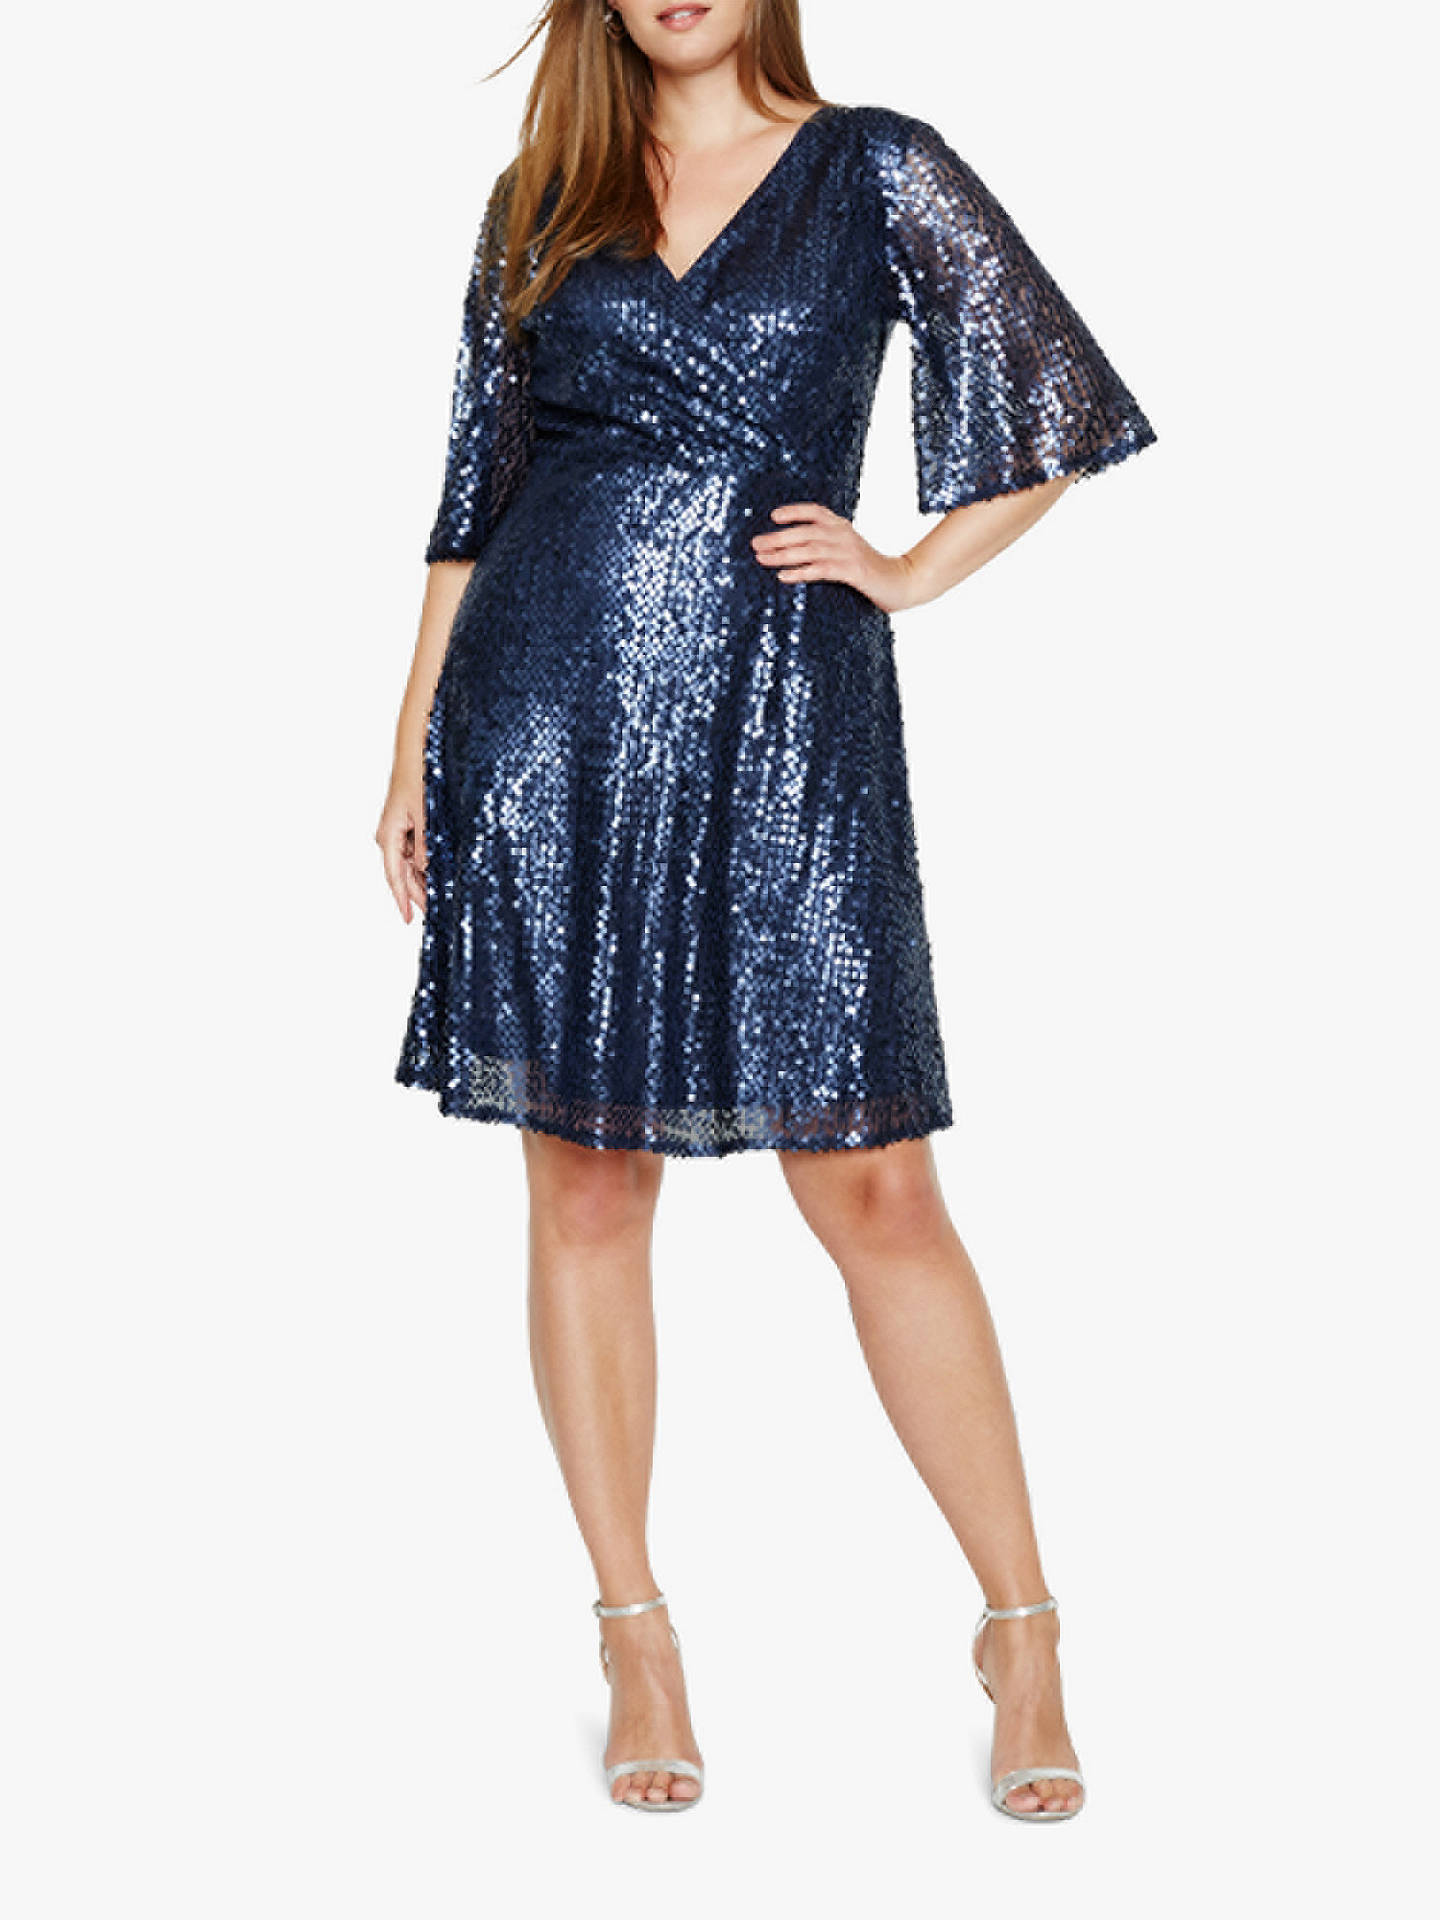 BuyStudio 8 Maya Sequin Dress, Blue, 20 Online at johnlewis.com